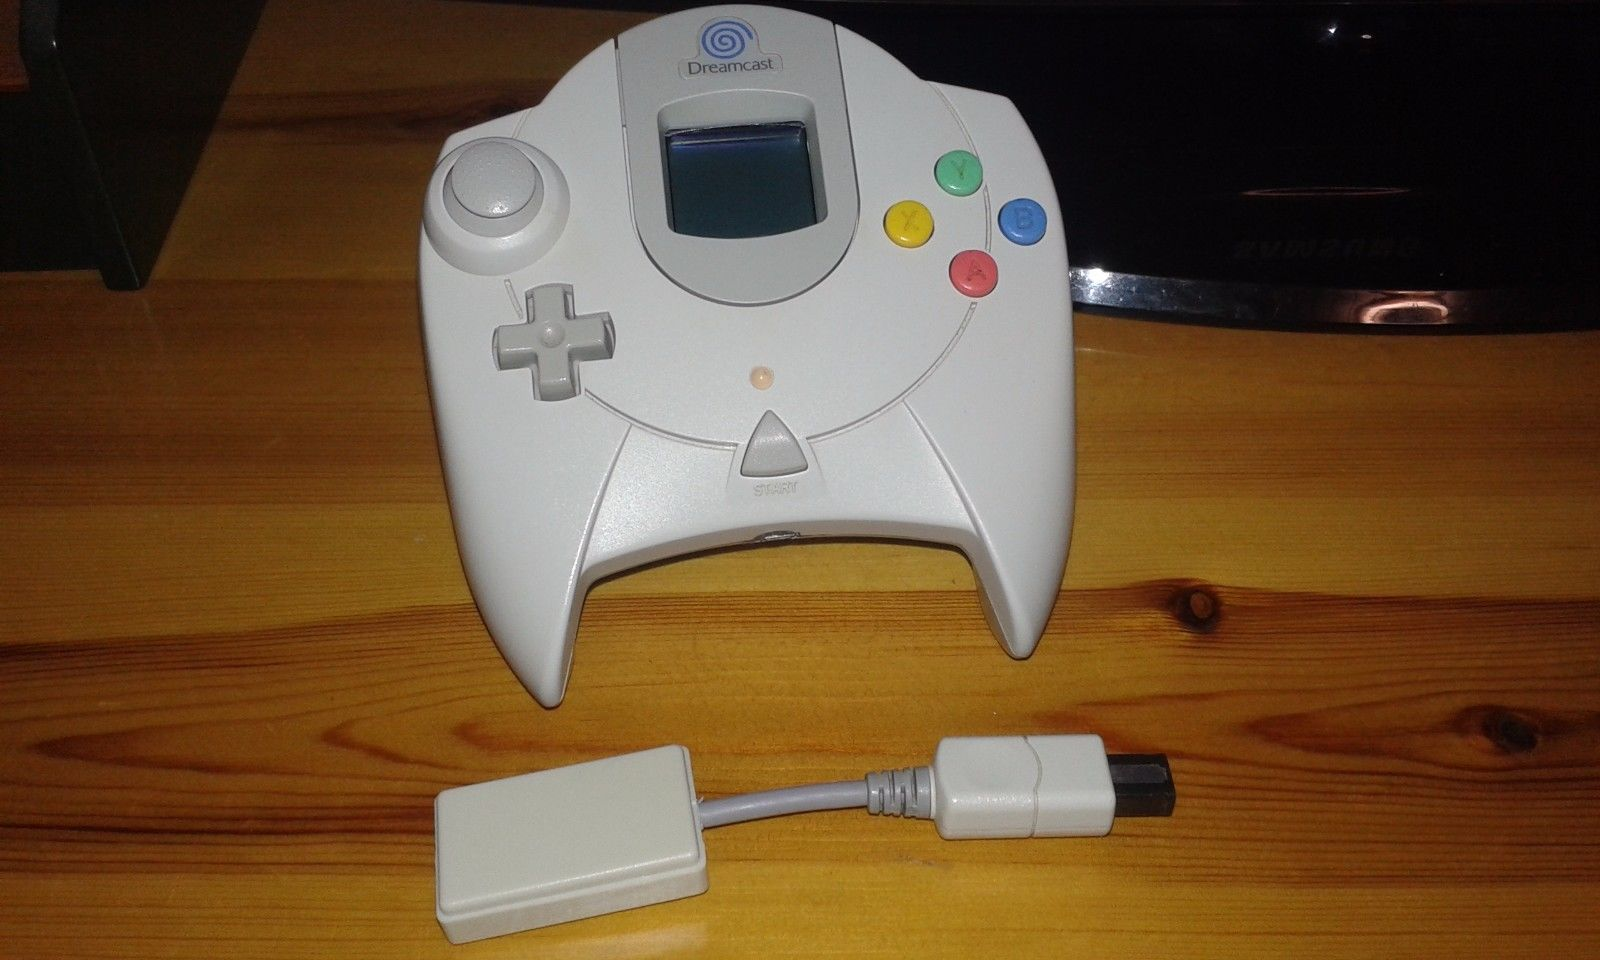 DreamConn Wireless Dreamcast Controller Appears On eBay